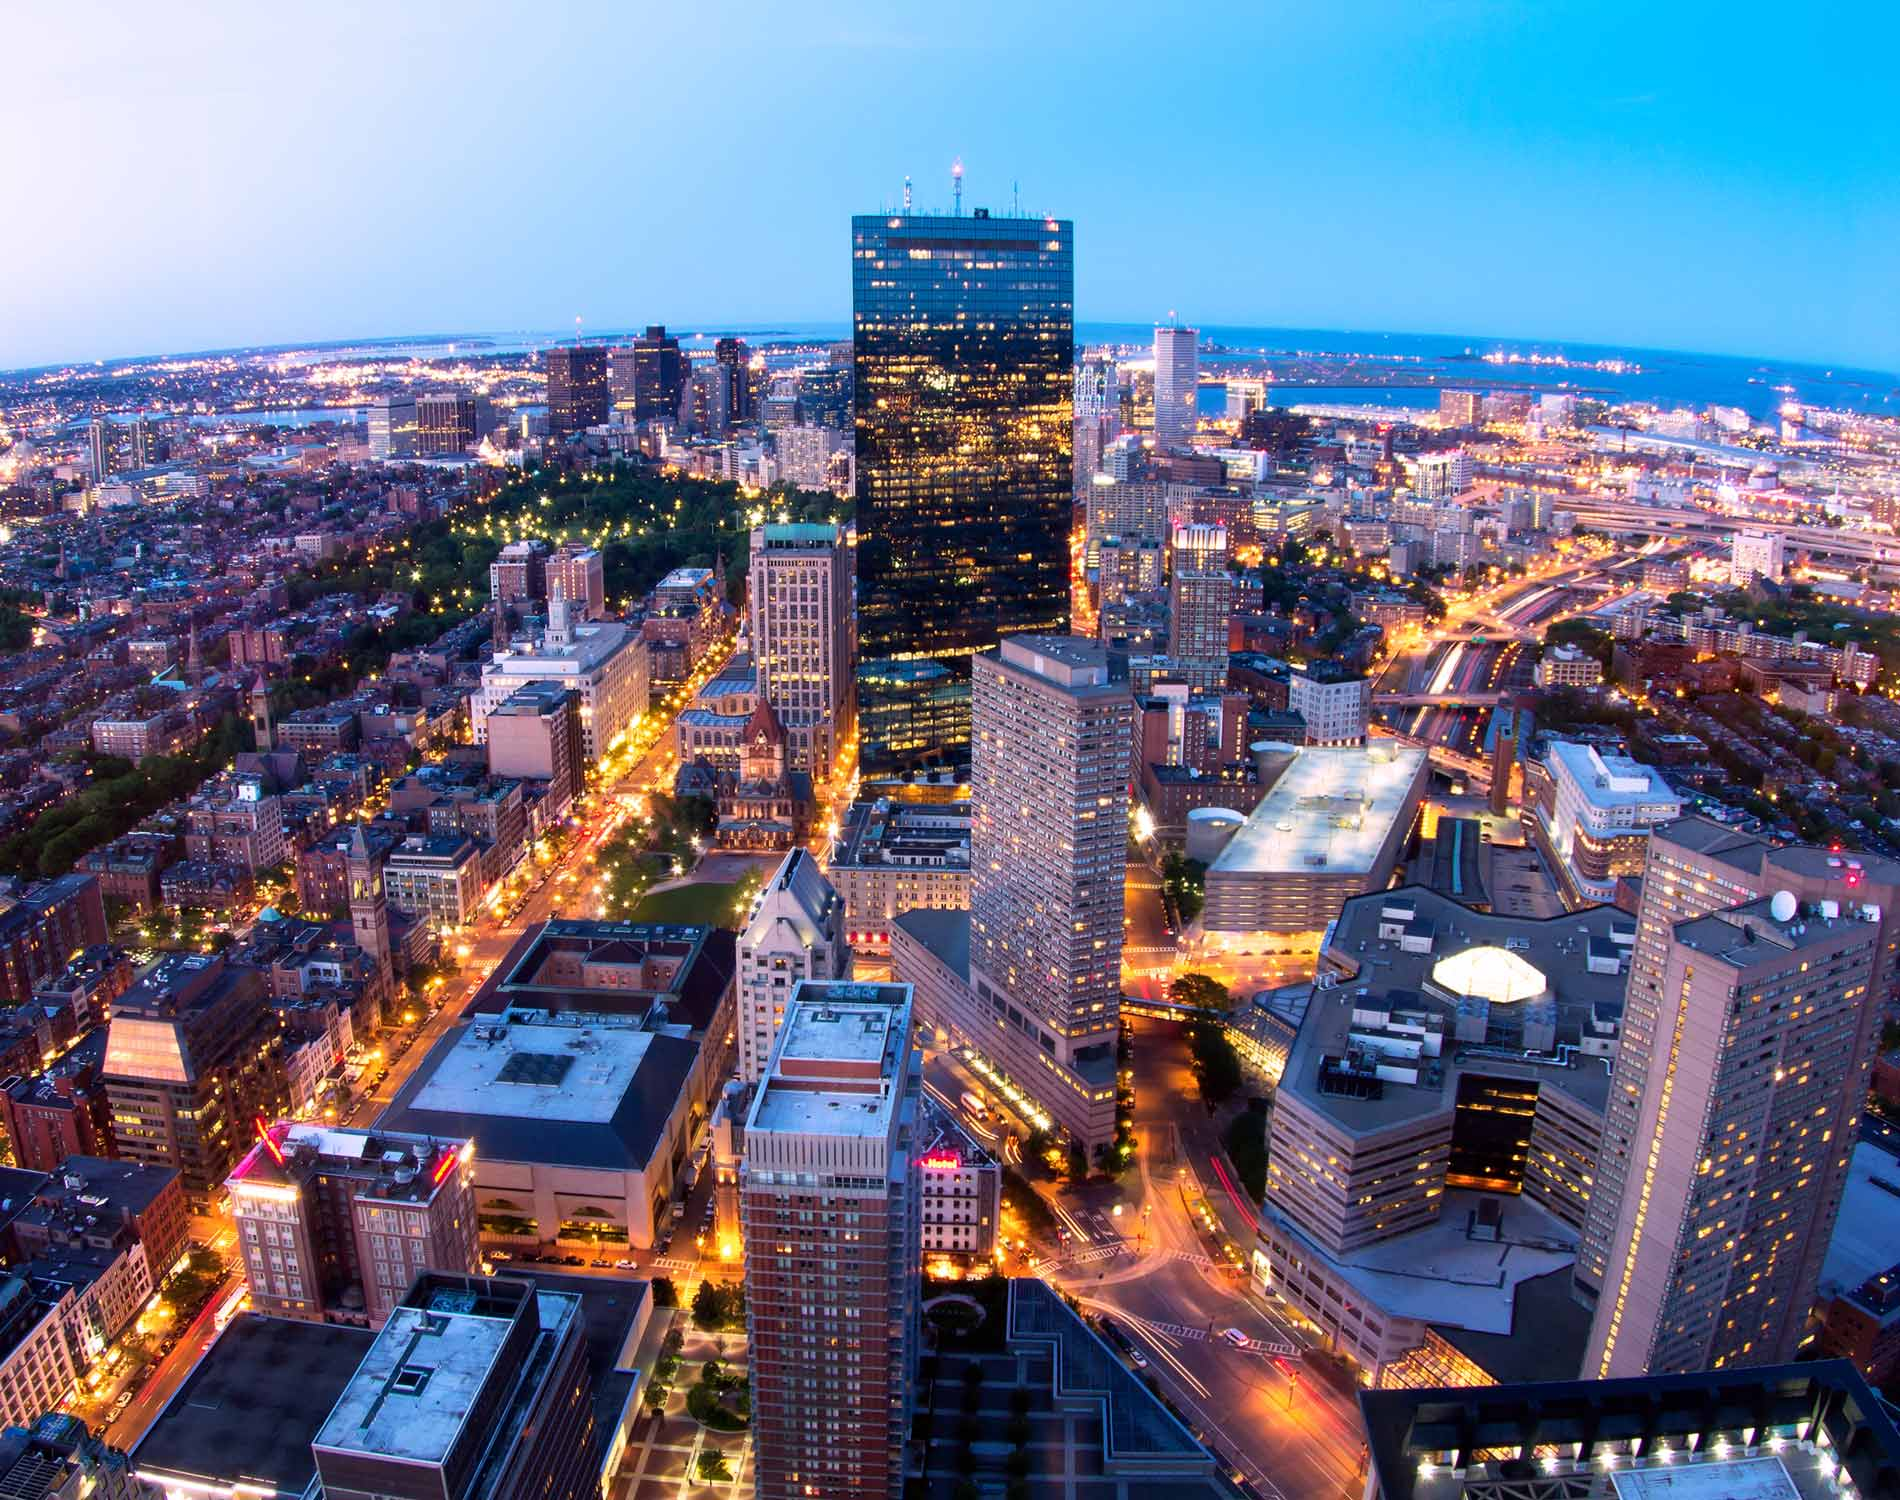 /-/media/images/website/background-images/offices/boston/boston_1.ashx